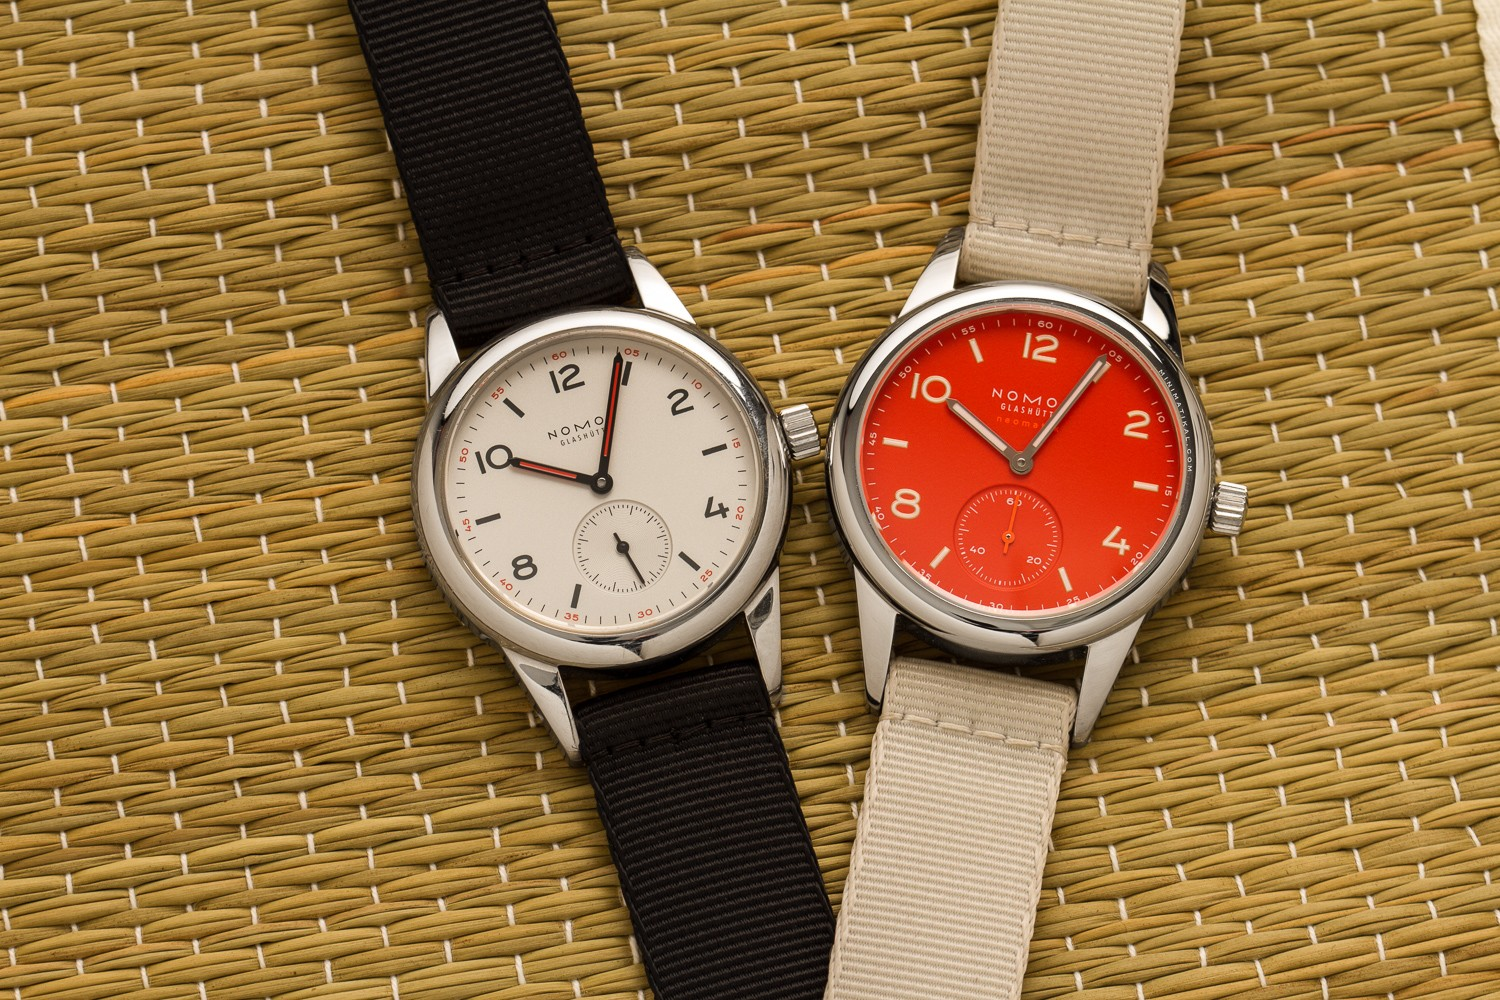 nomos club 701 with alpha movement versus nomos club neomatik